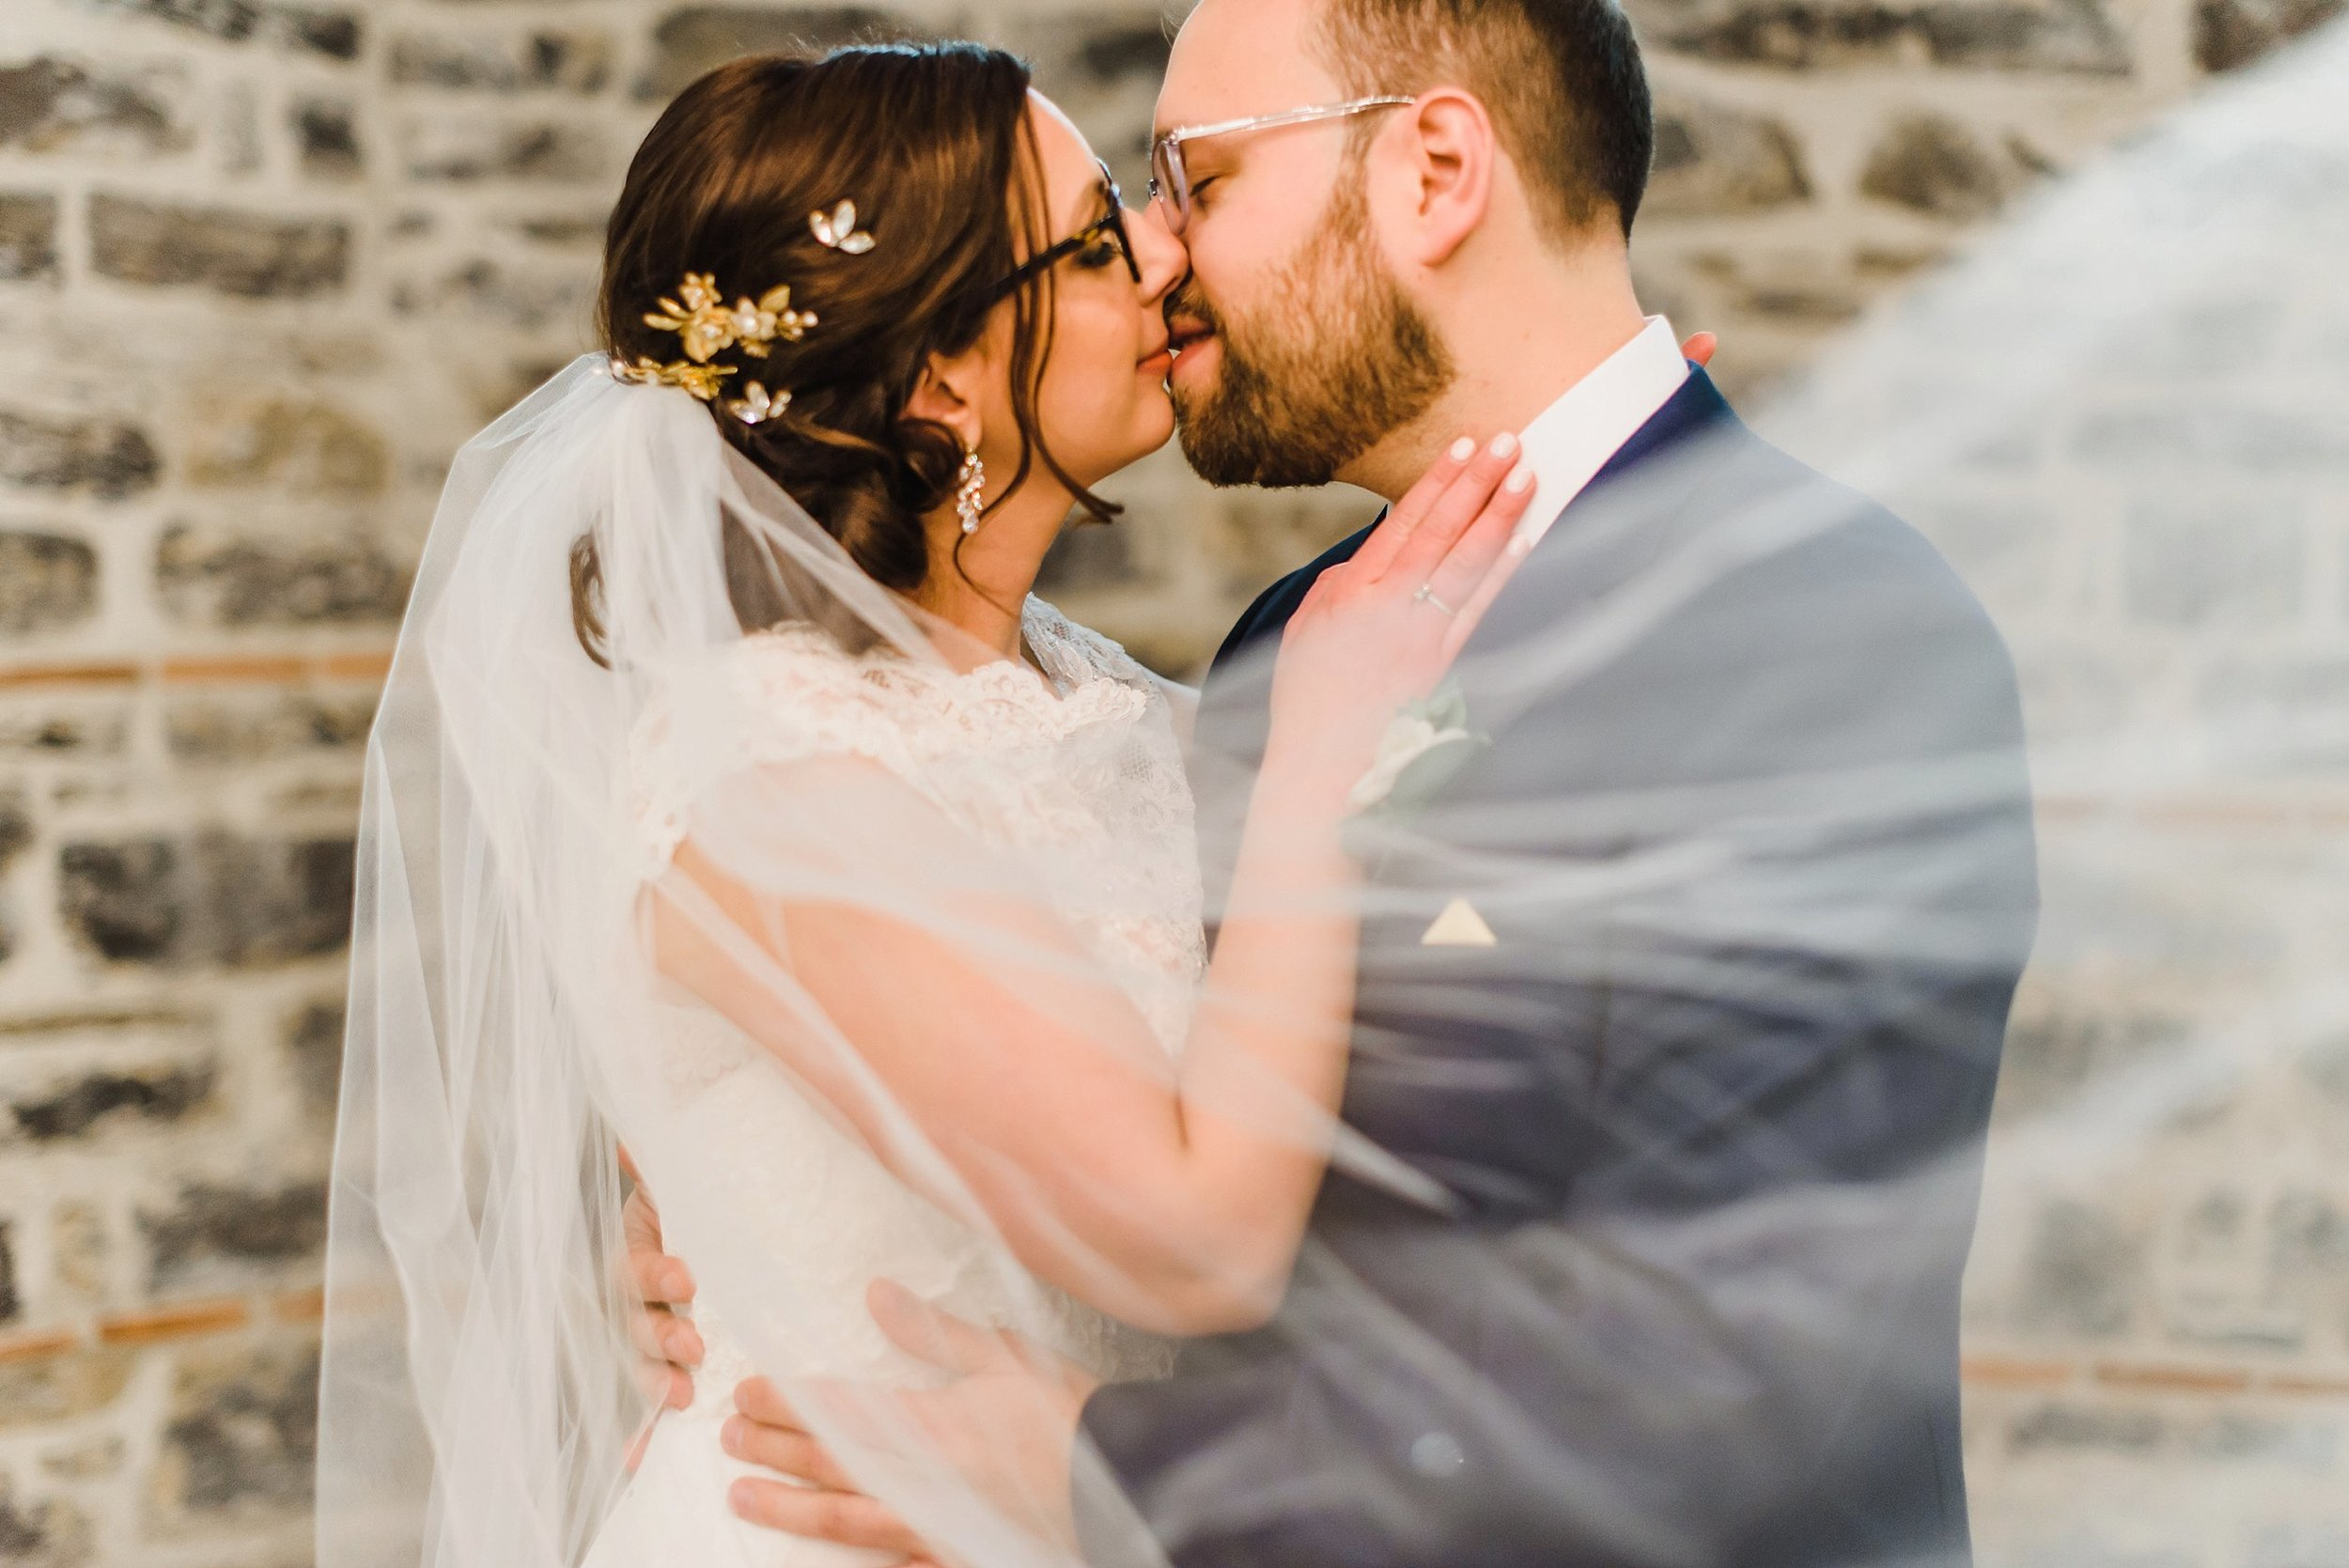 light airy indie fine art ottawa wedding photographer | Ali and Batoul Photography_0048.jpg